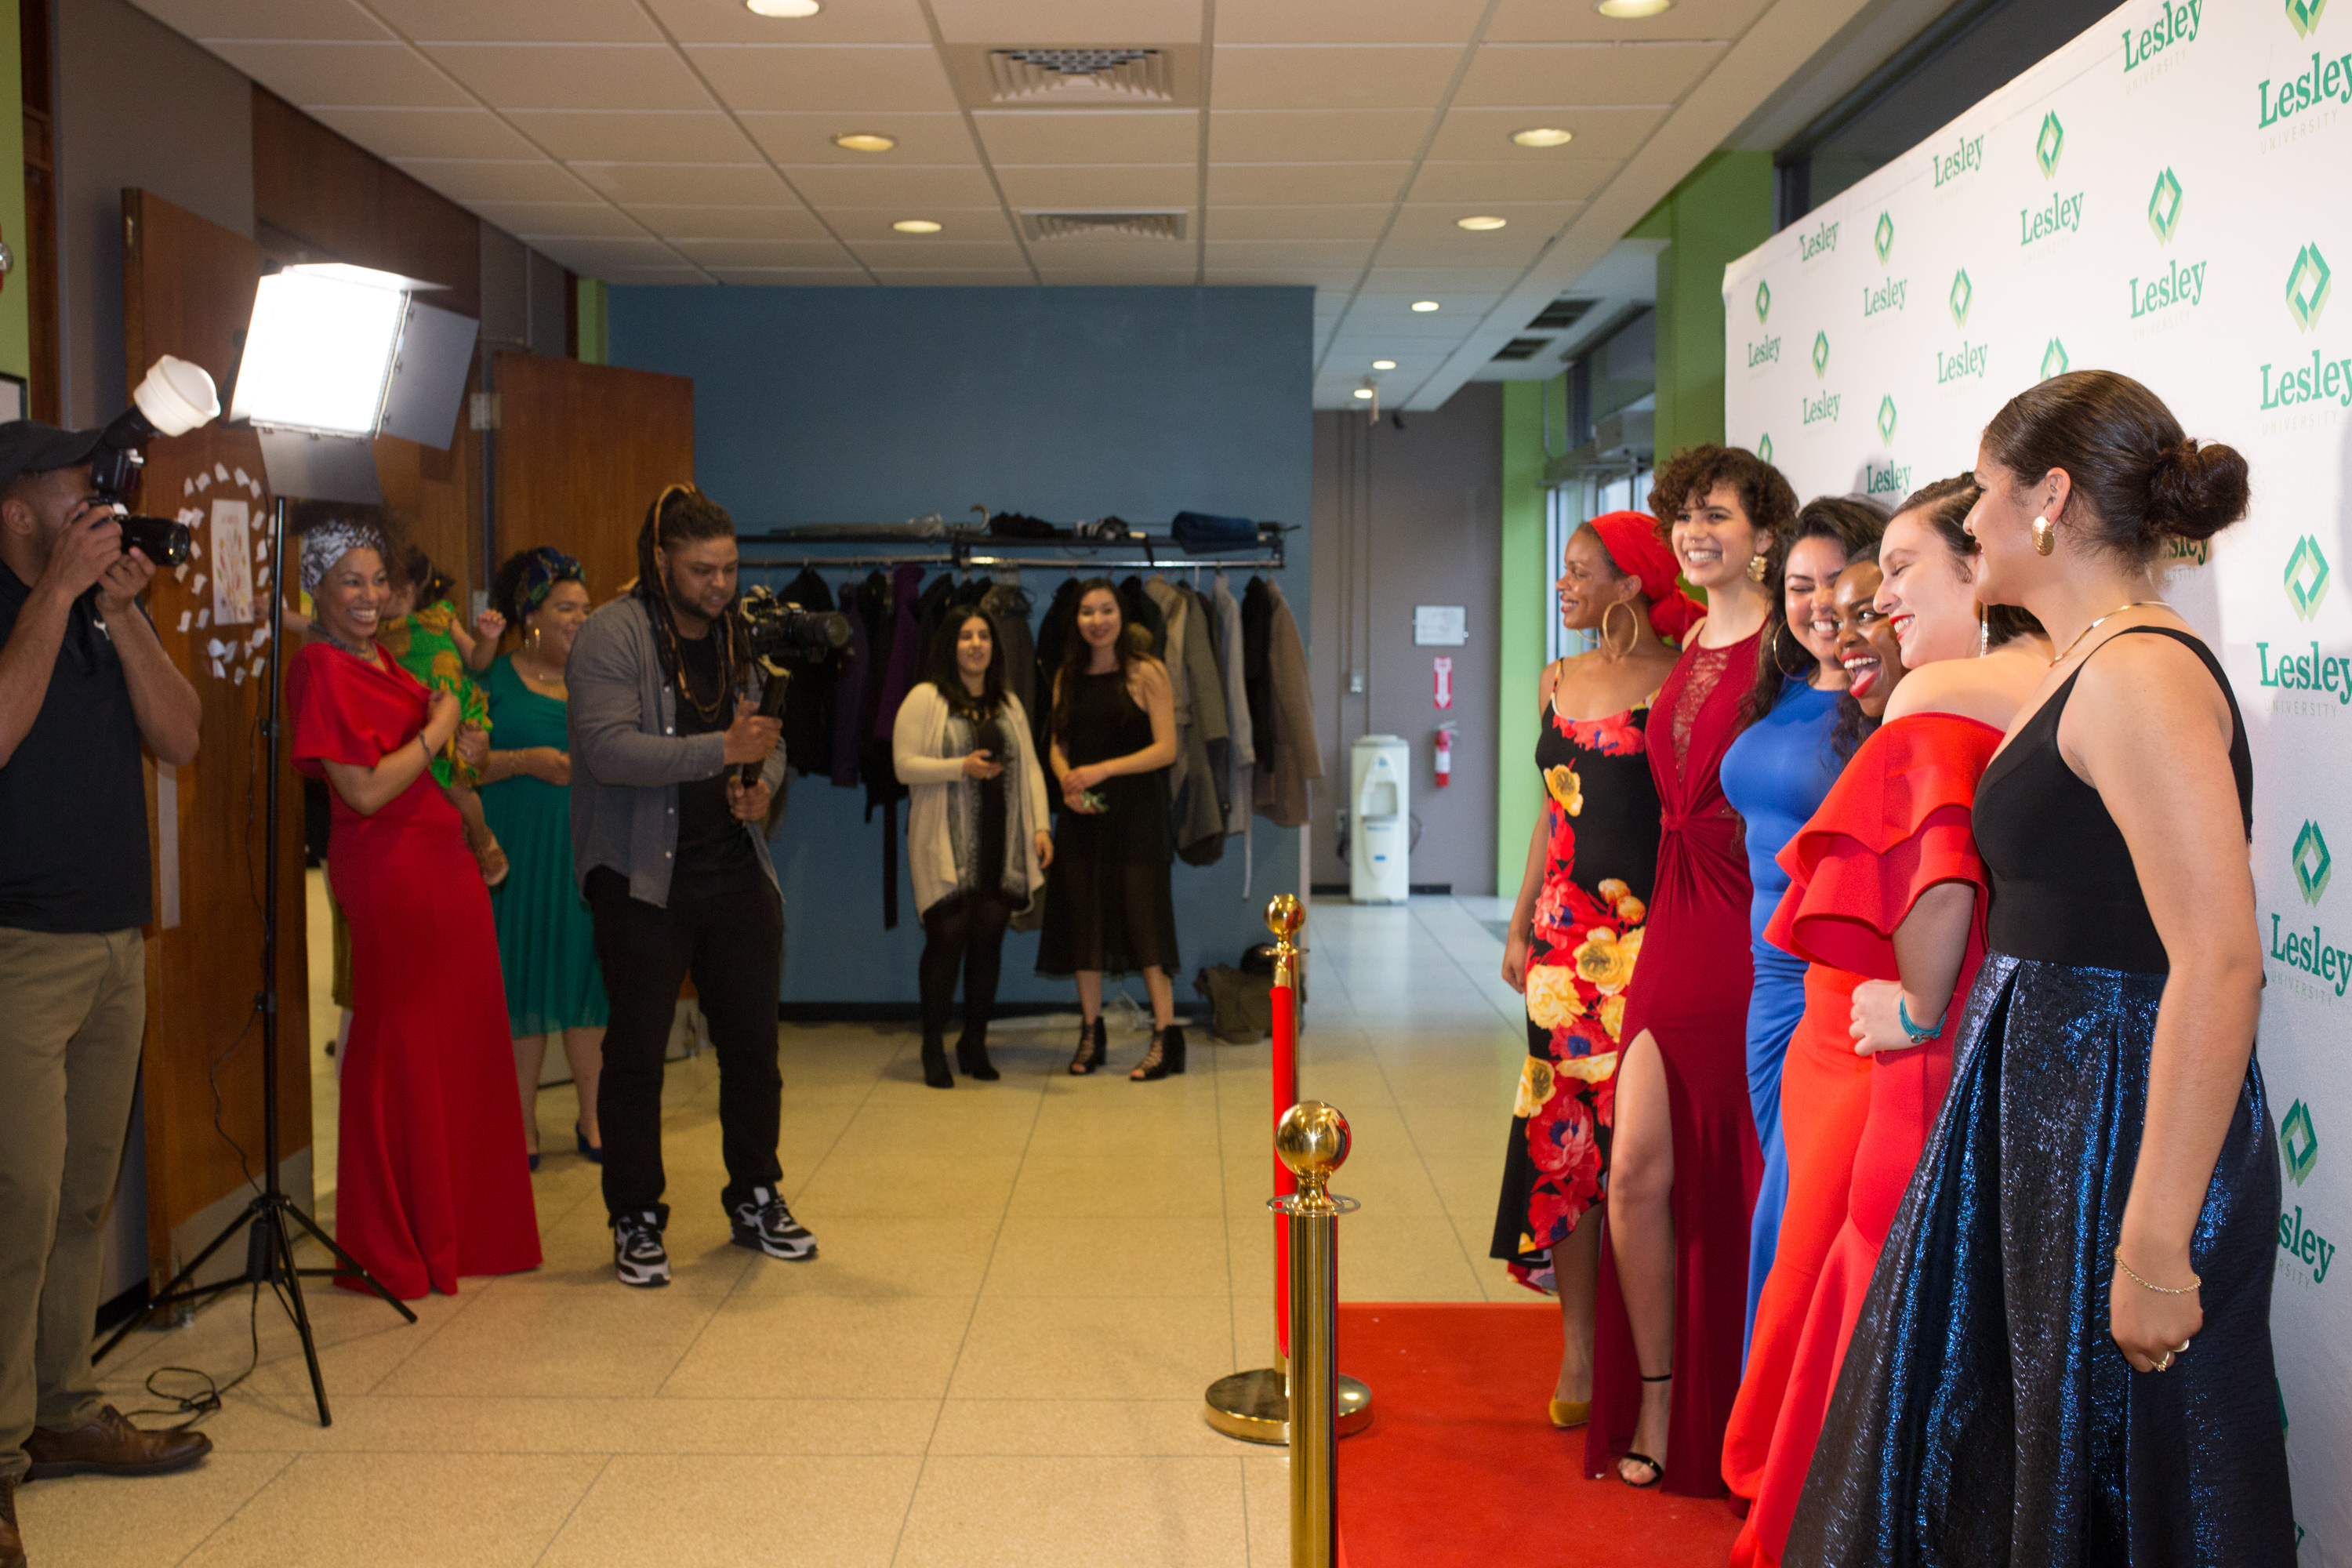 Students pose on the red carpet at the Unity Gala in Washburn Hall.